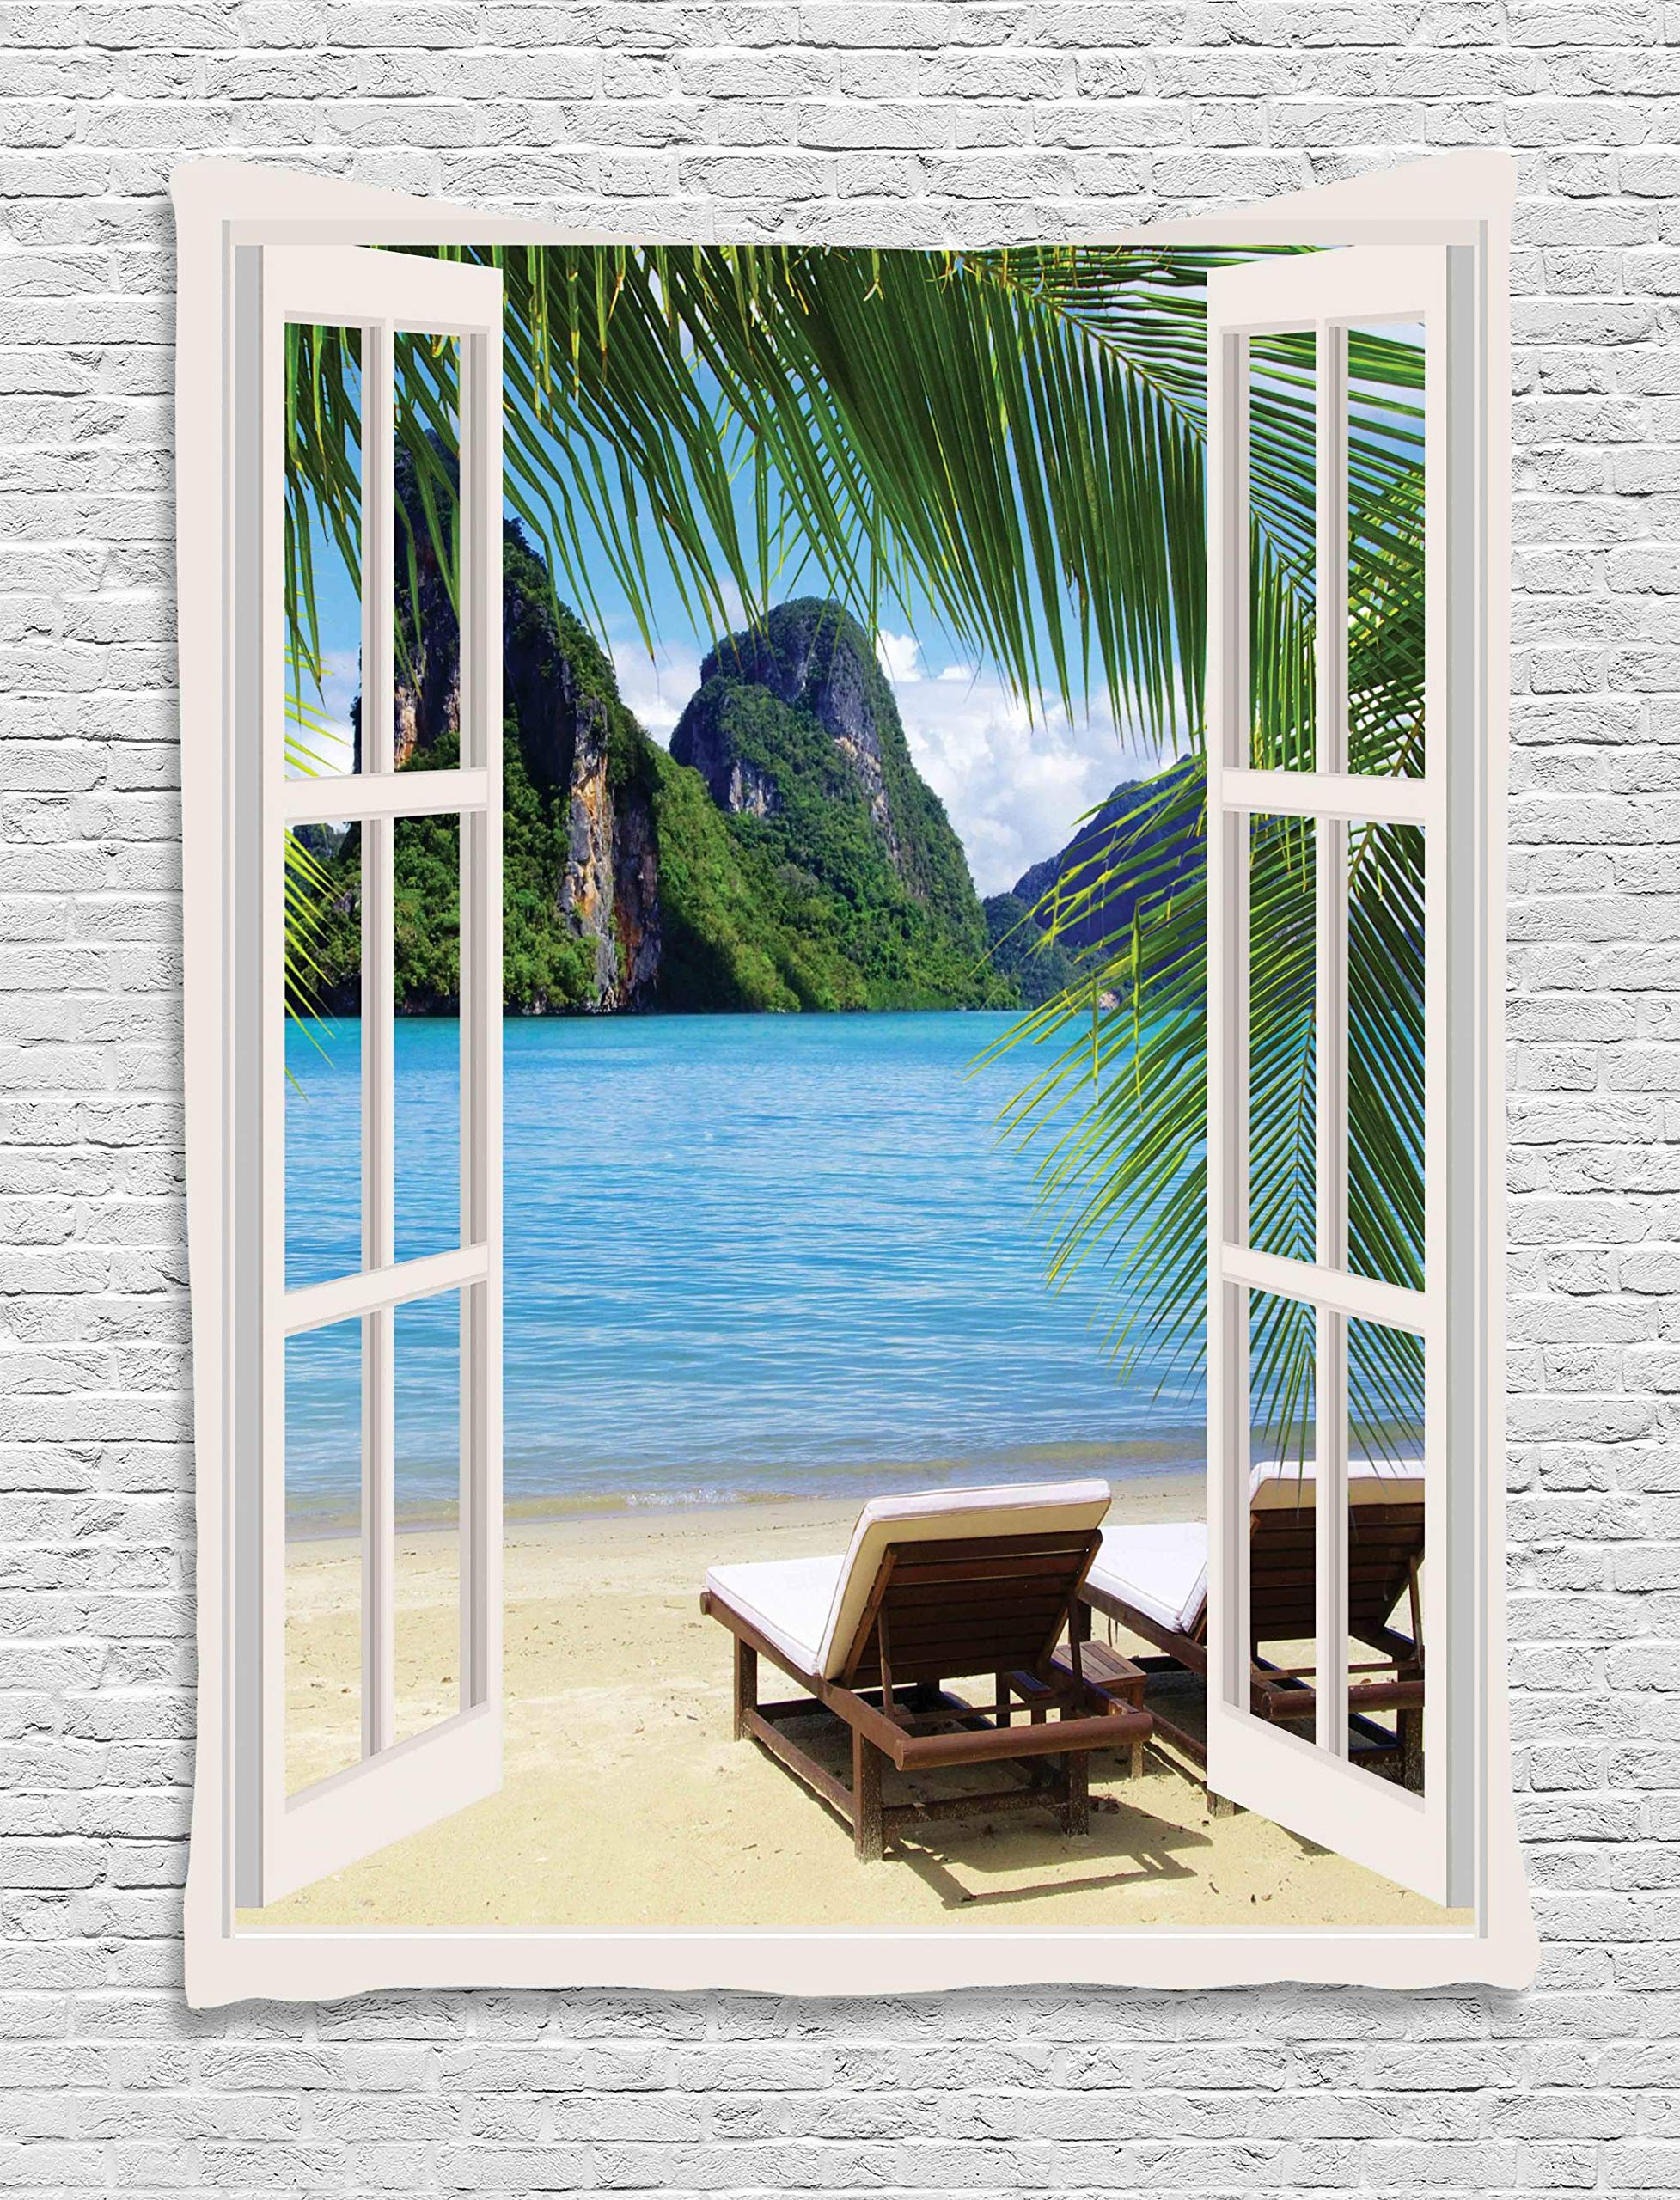 Ambesonne Beach Tapestry Decor, Palm Trees in Ocean Heaven Sunbeds Balcony White Wooden Windows Summer Tropical, Wall Hanging for Bedroom Living Room Dorm, 60 W x 80 L Inches, Blue Green White